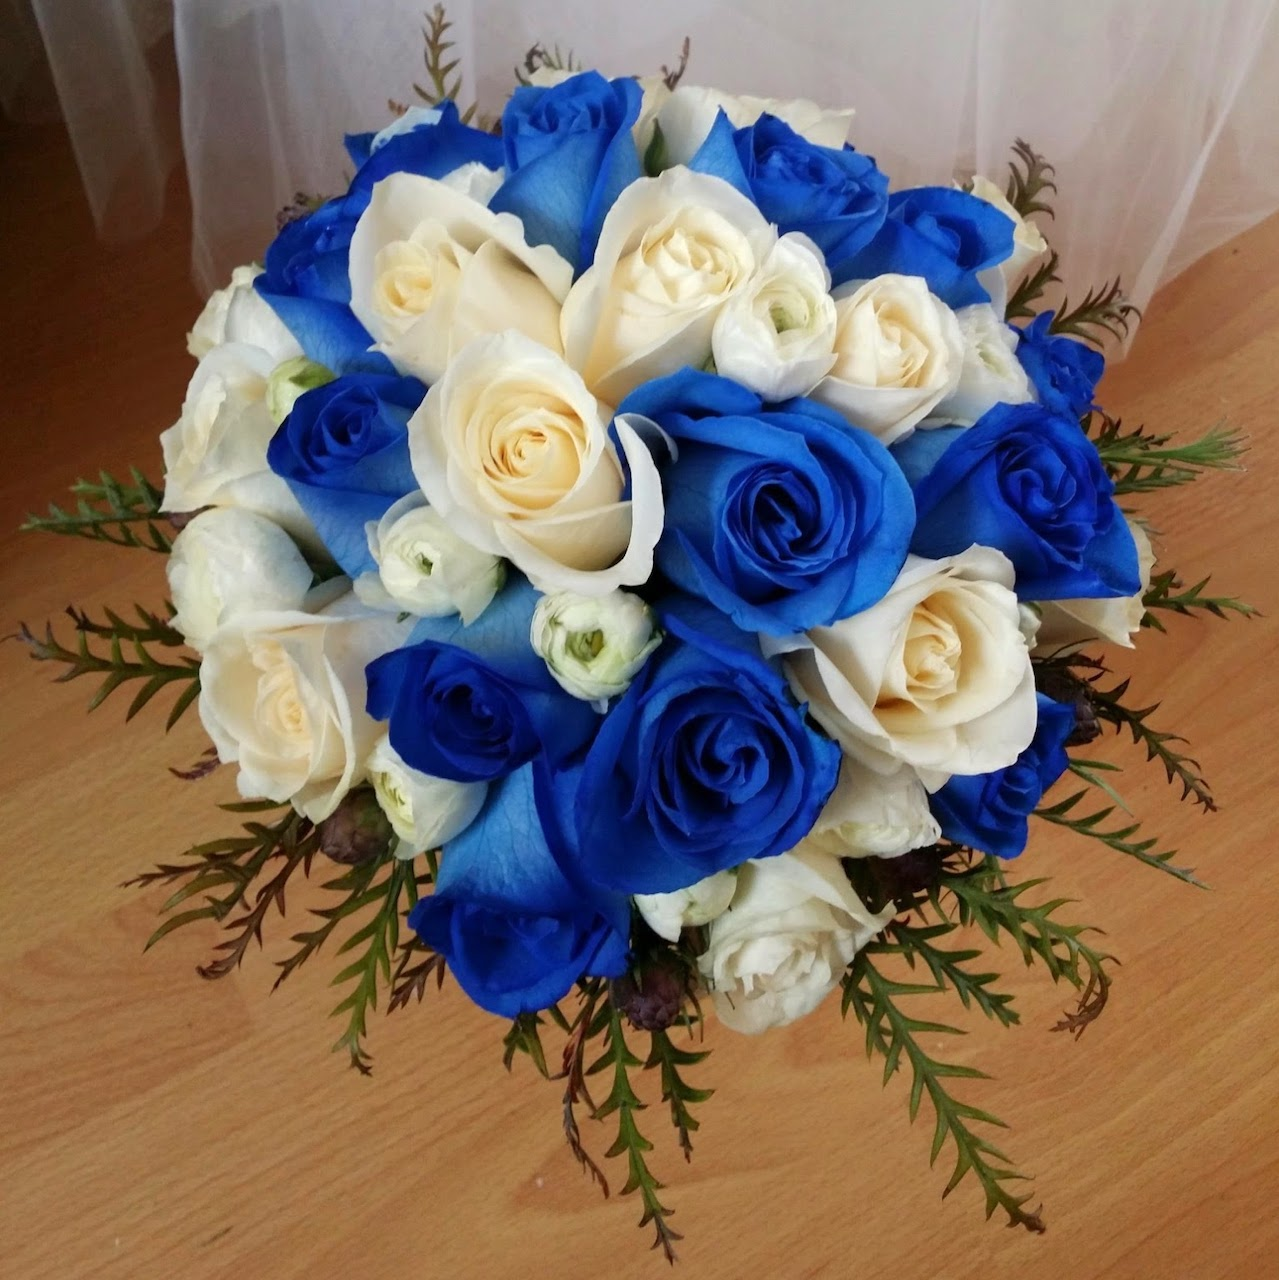 - What better way to add contrast than by having two colors that are nearly opposite of one another? We love how the blue and white compliment each other in a dramatic, yet elegant way in this simple, yet effective wedding bouquet.